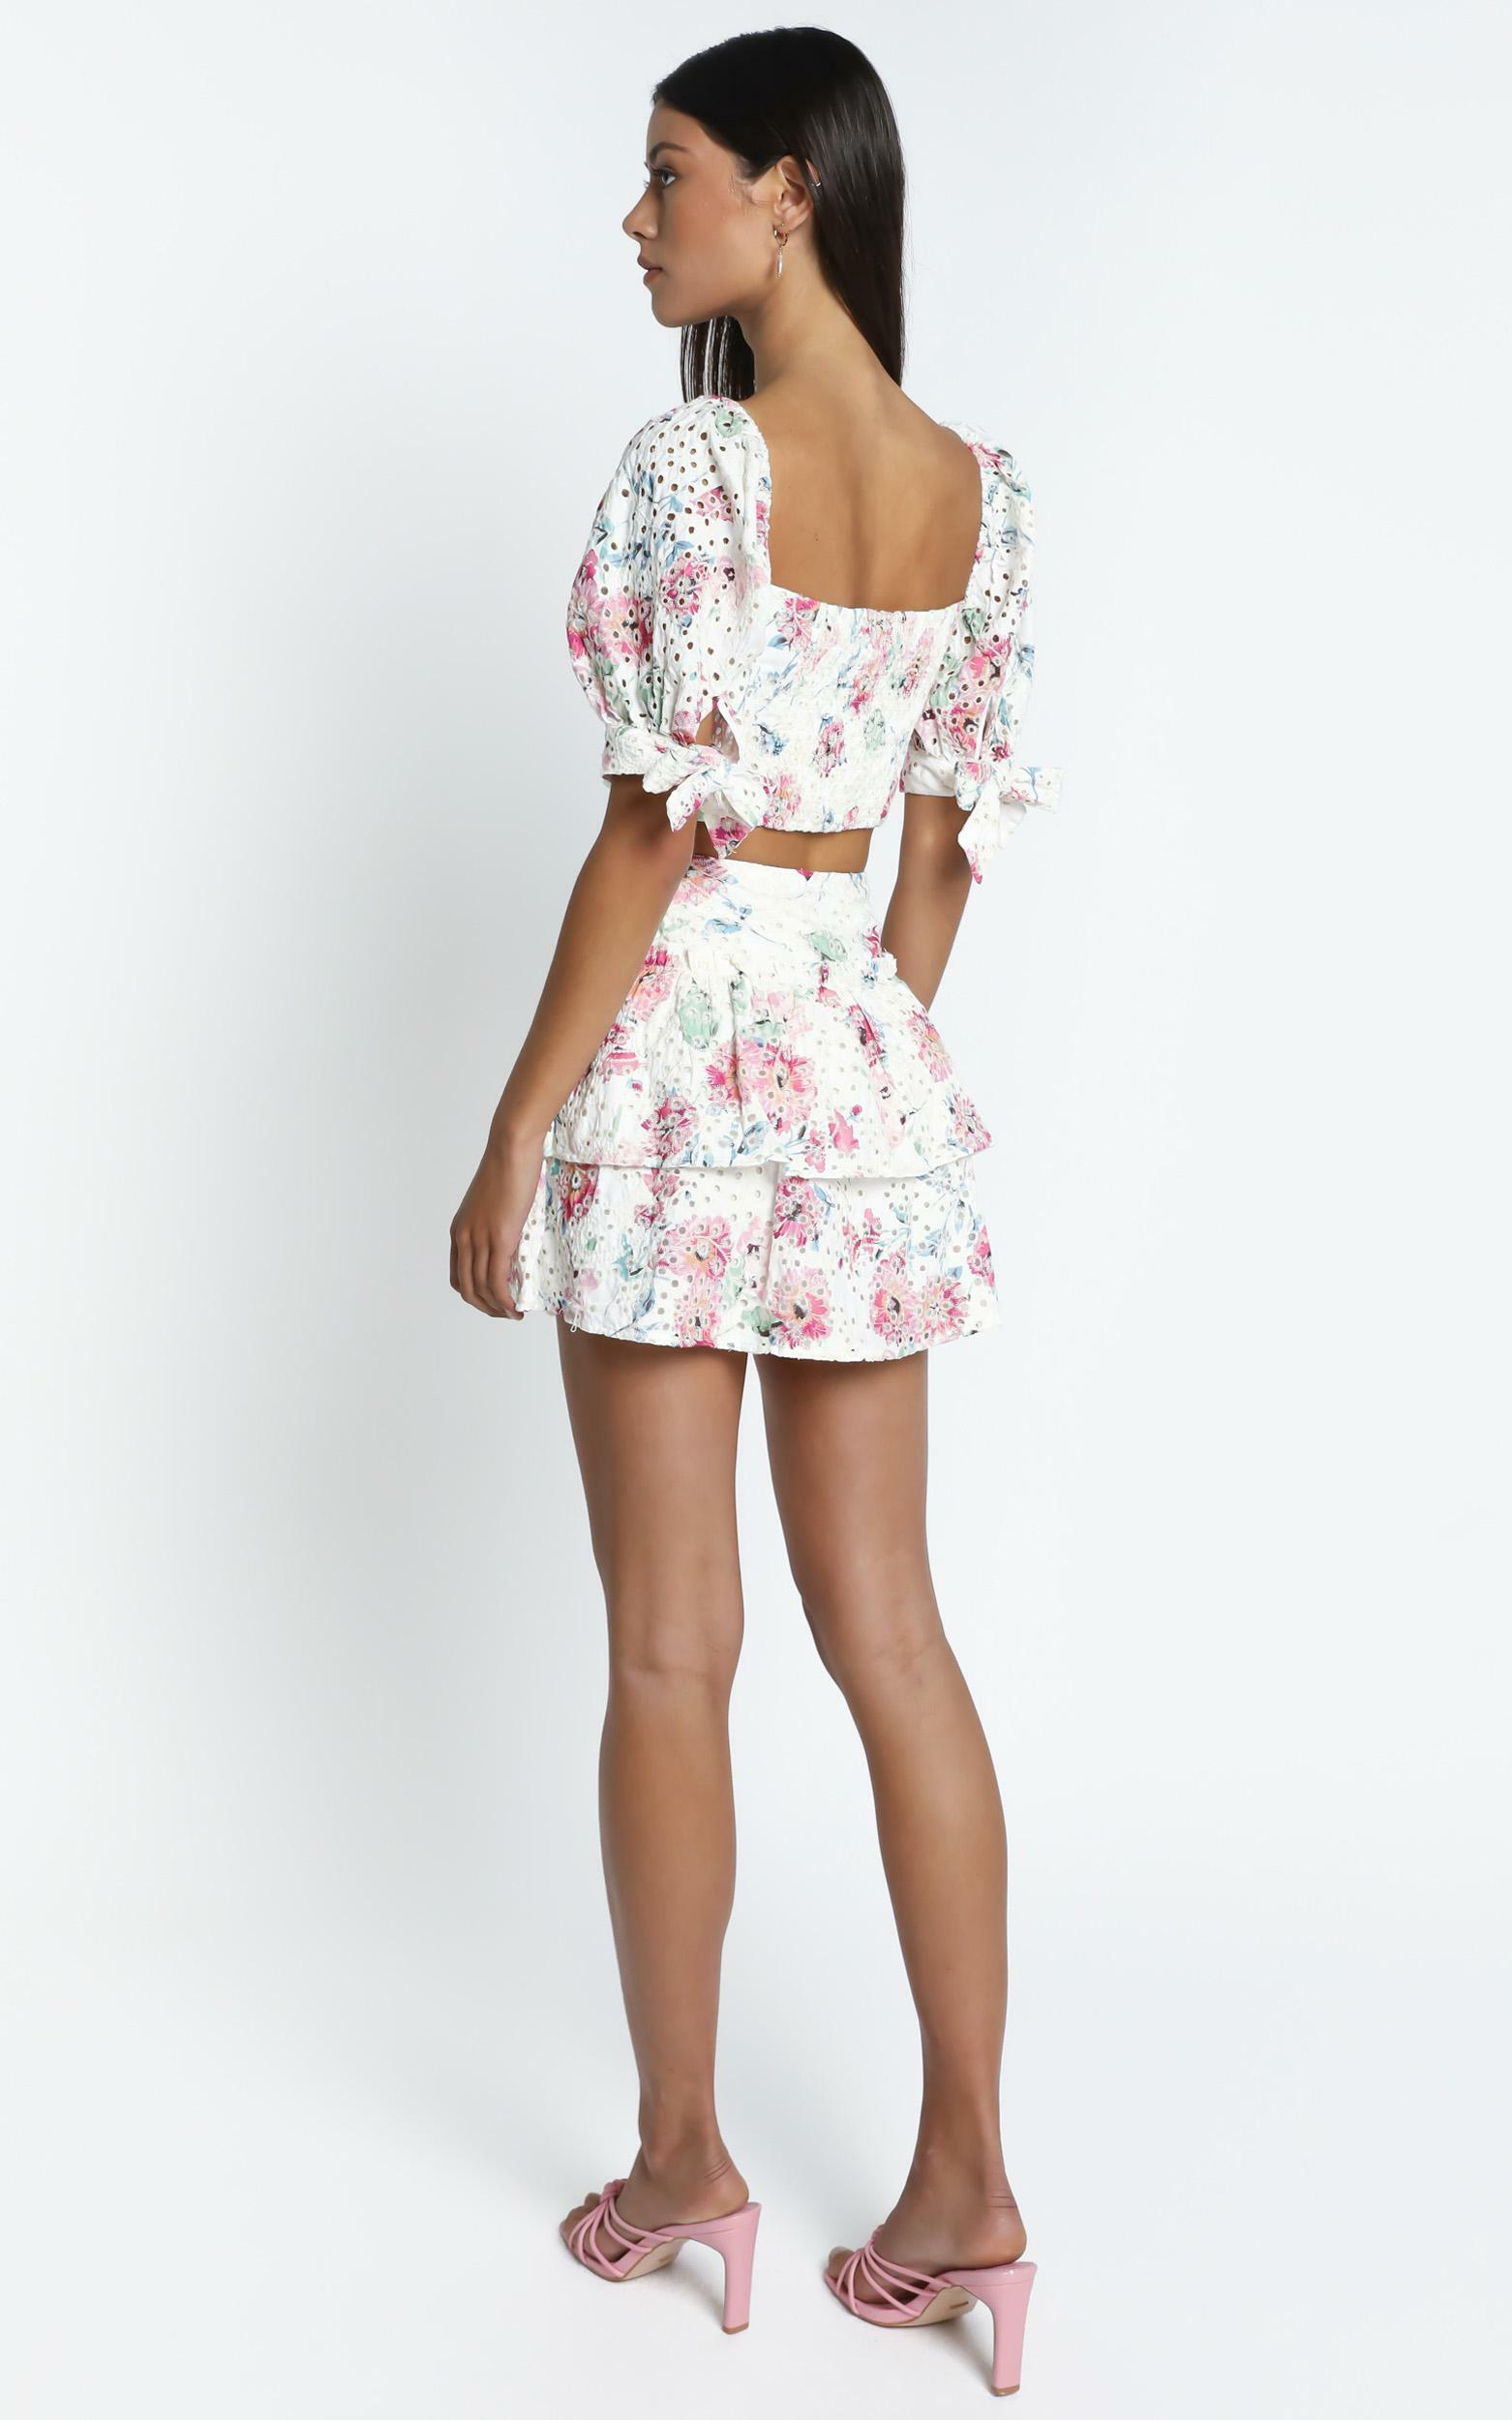 Kiah Skirt in White Floral - 14 (XL), White, hi-res image number null